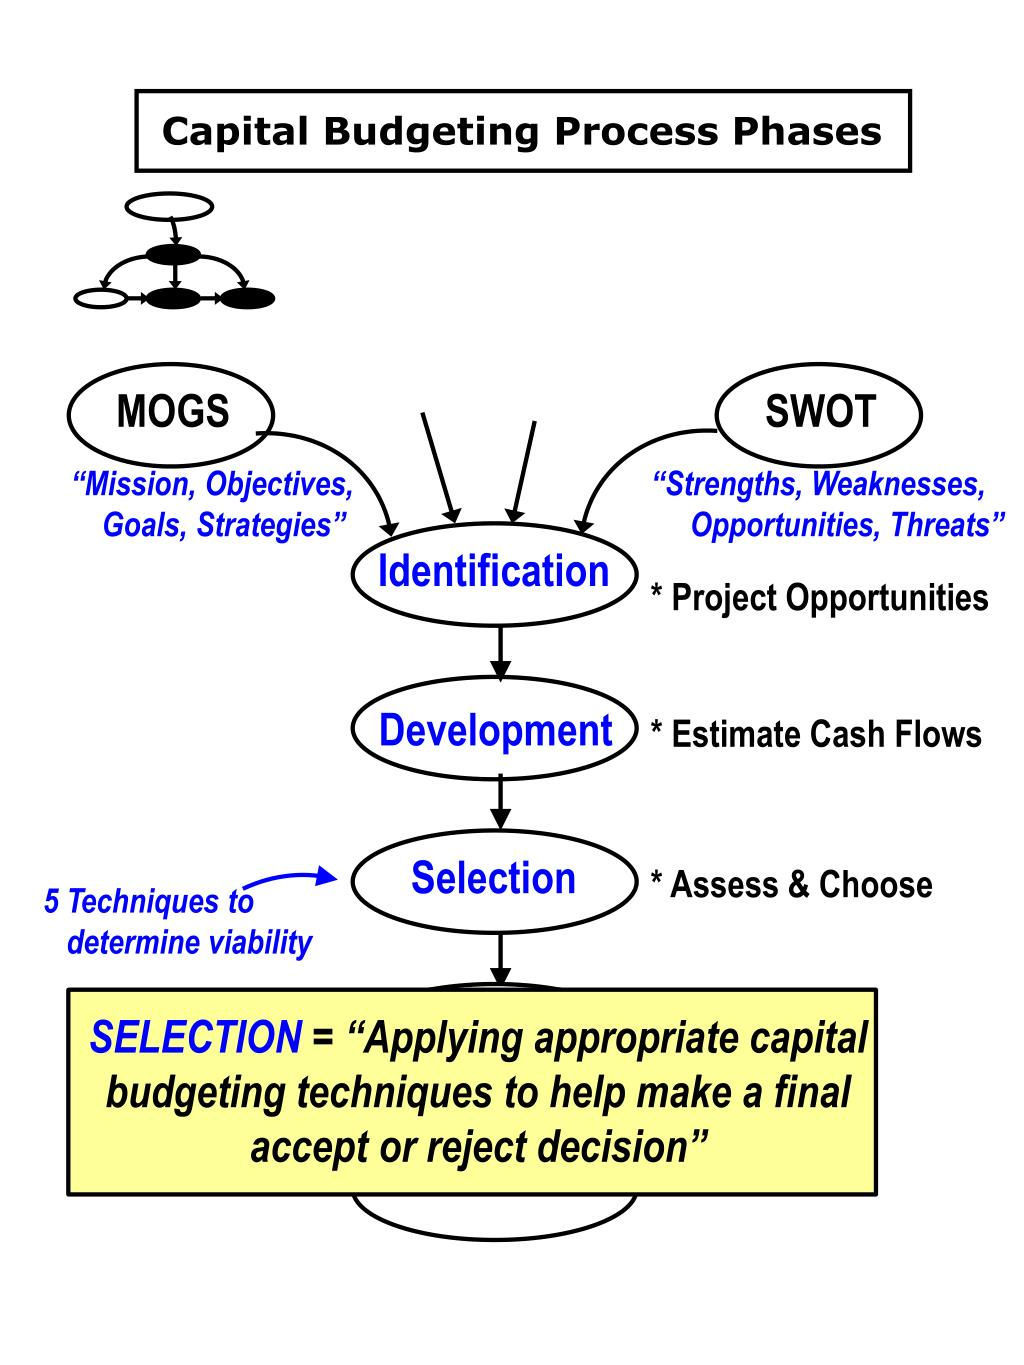 Capital Budgeting Process Phases